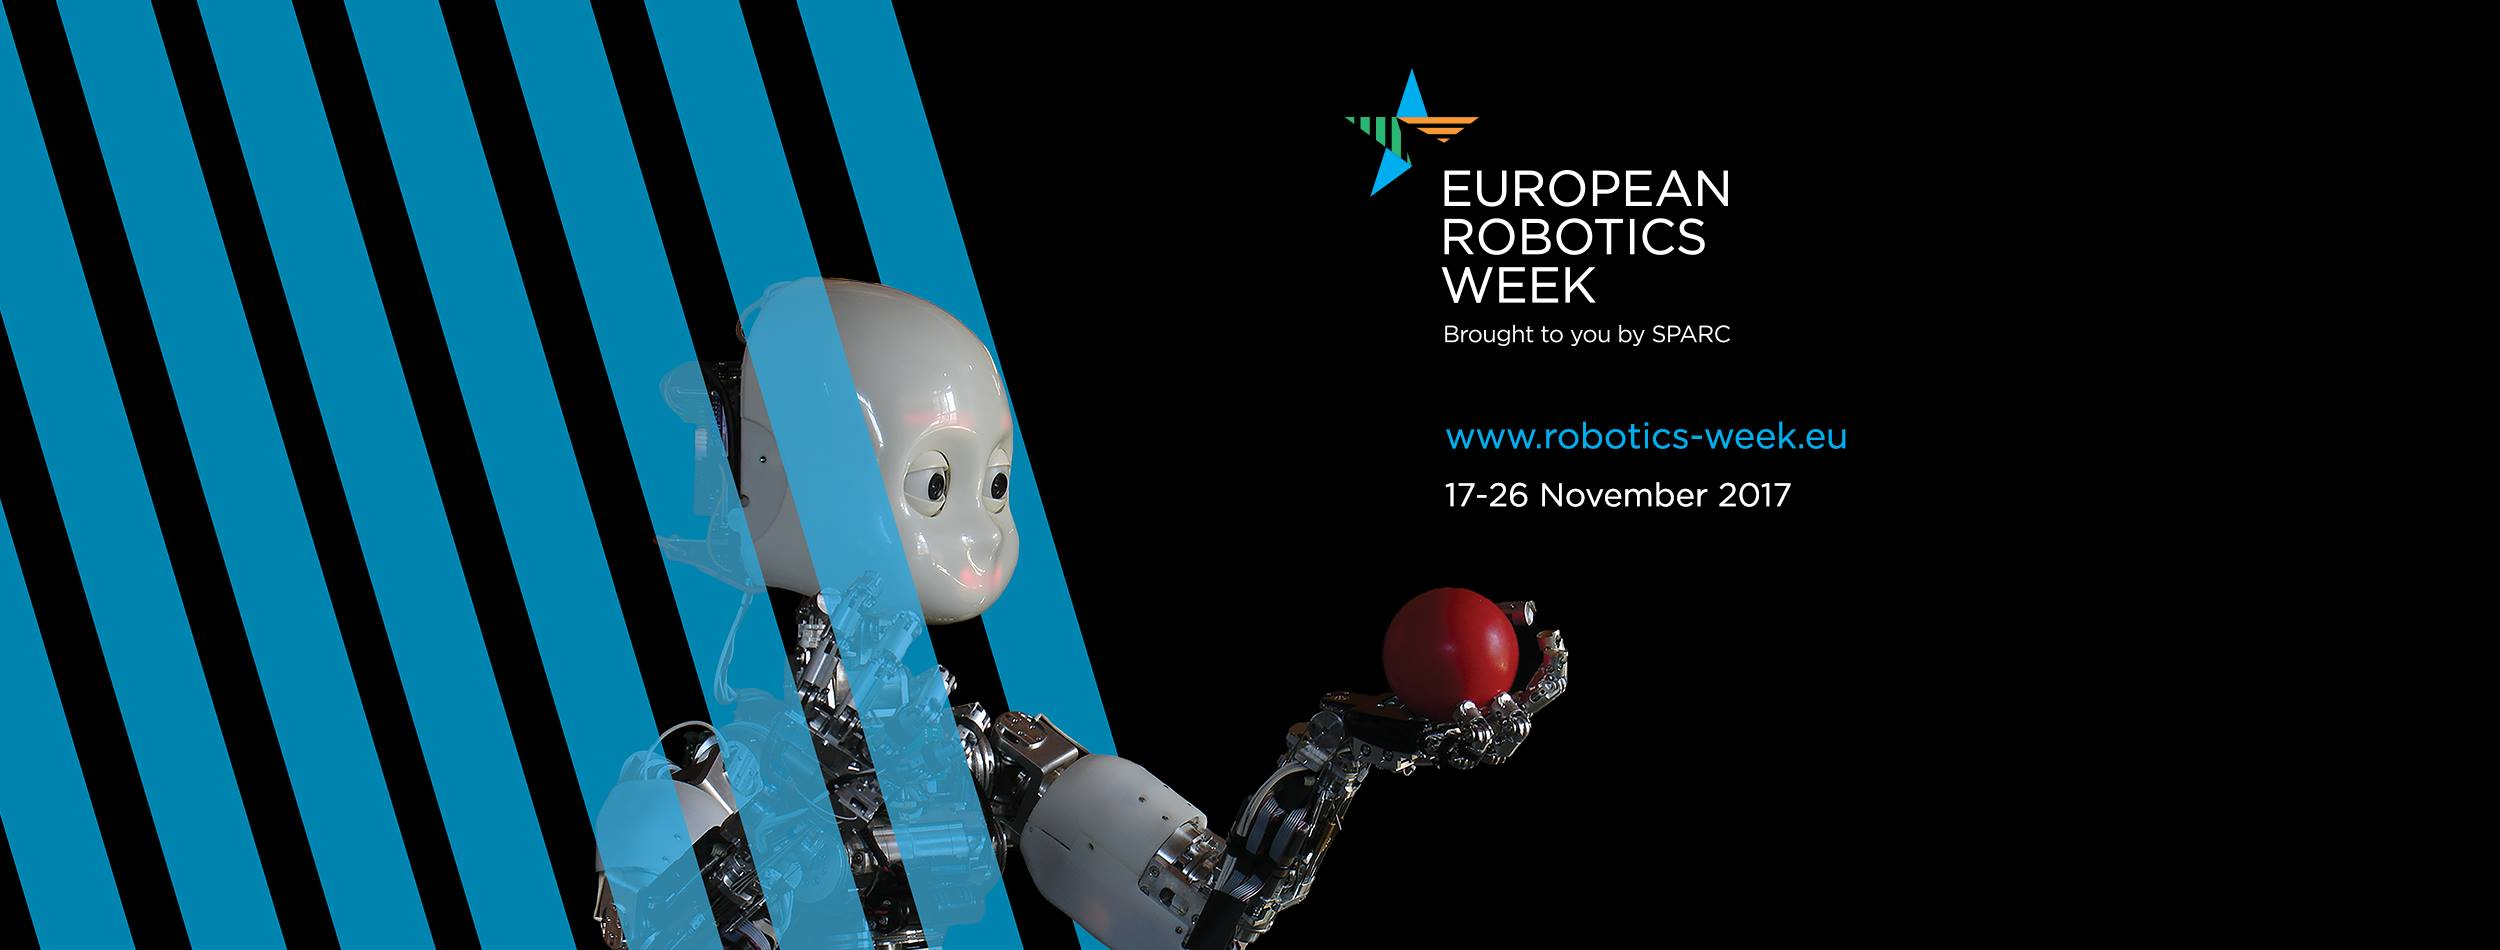 European Robotics Week 2017